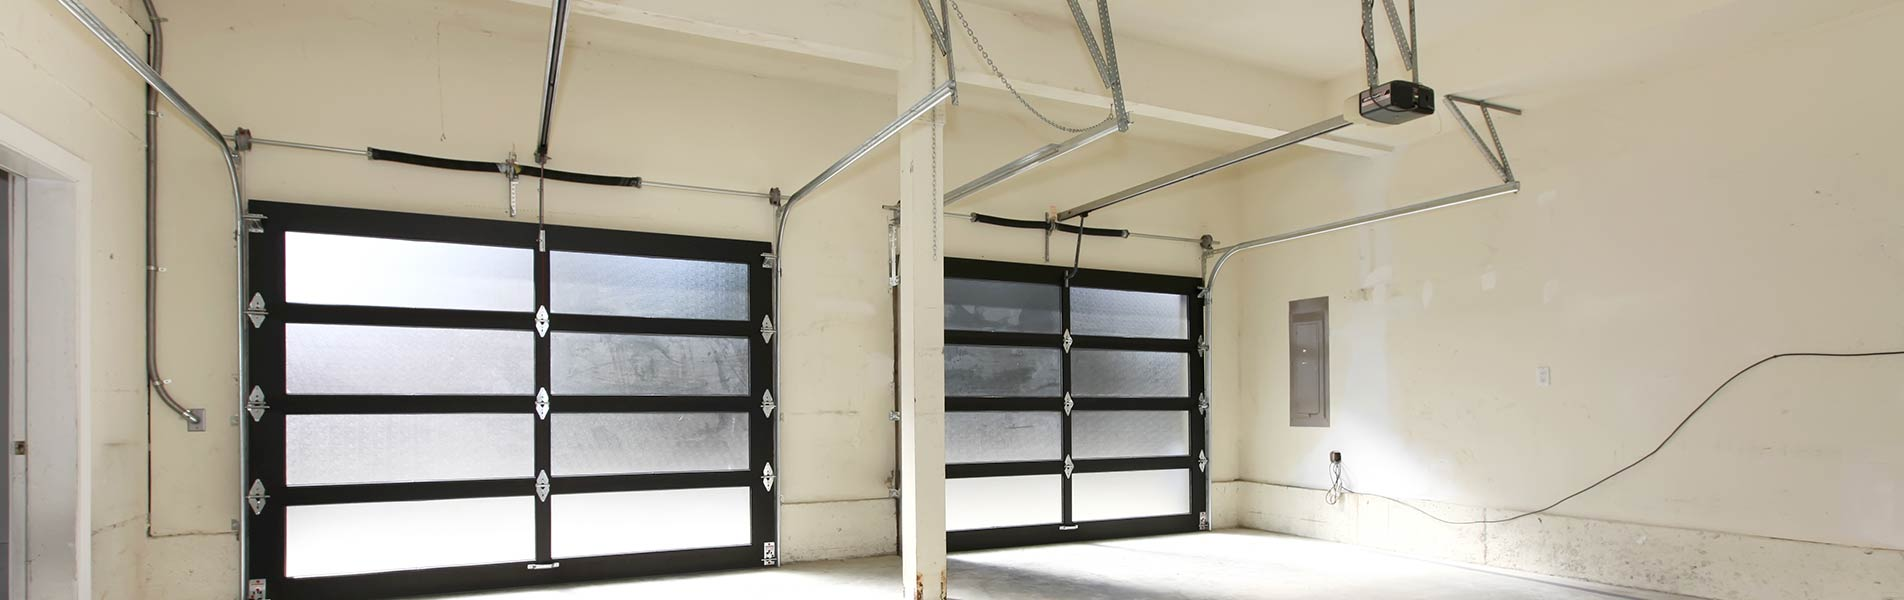 Eagle Garage Door Service Philadelphia, PA 215-297-3203